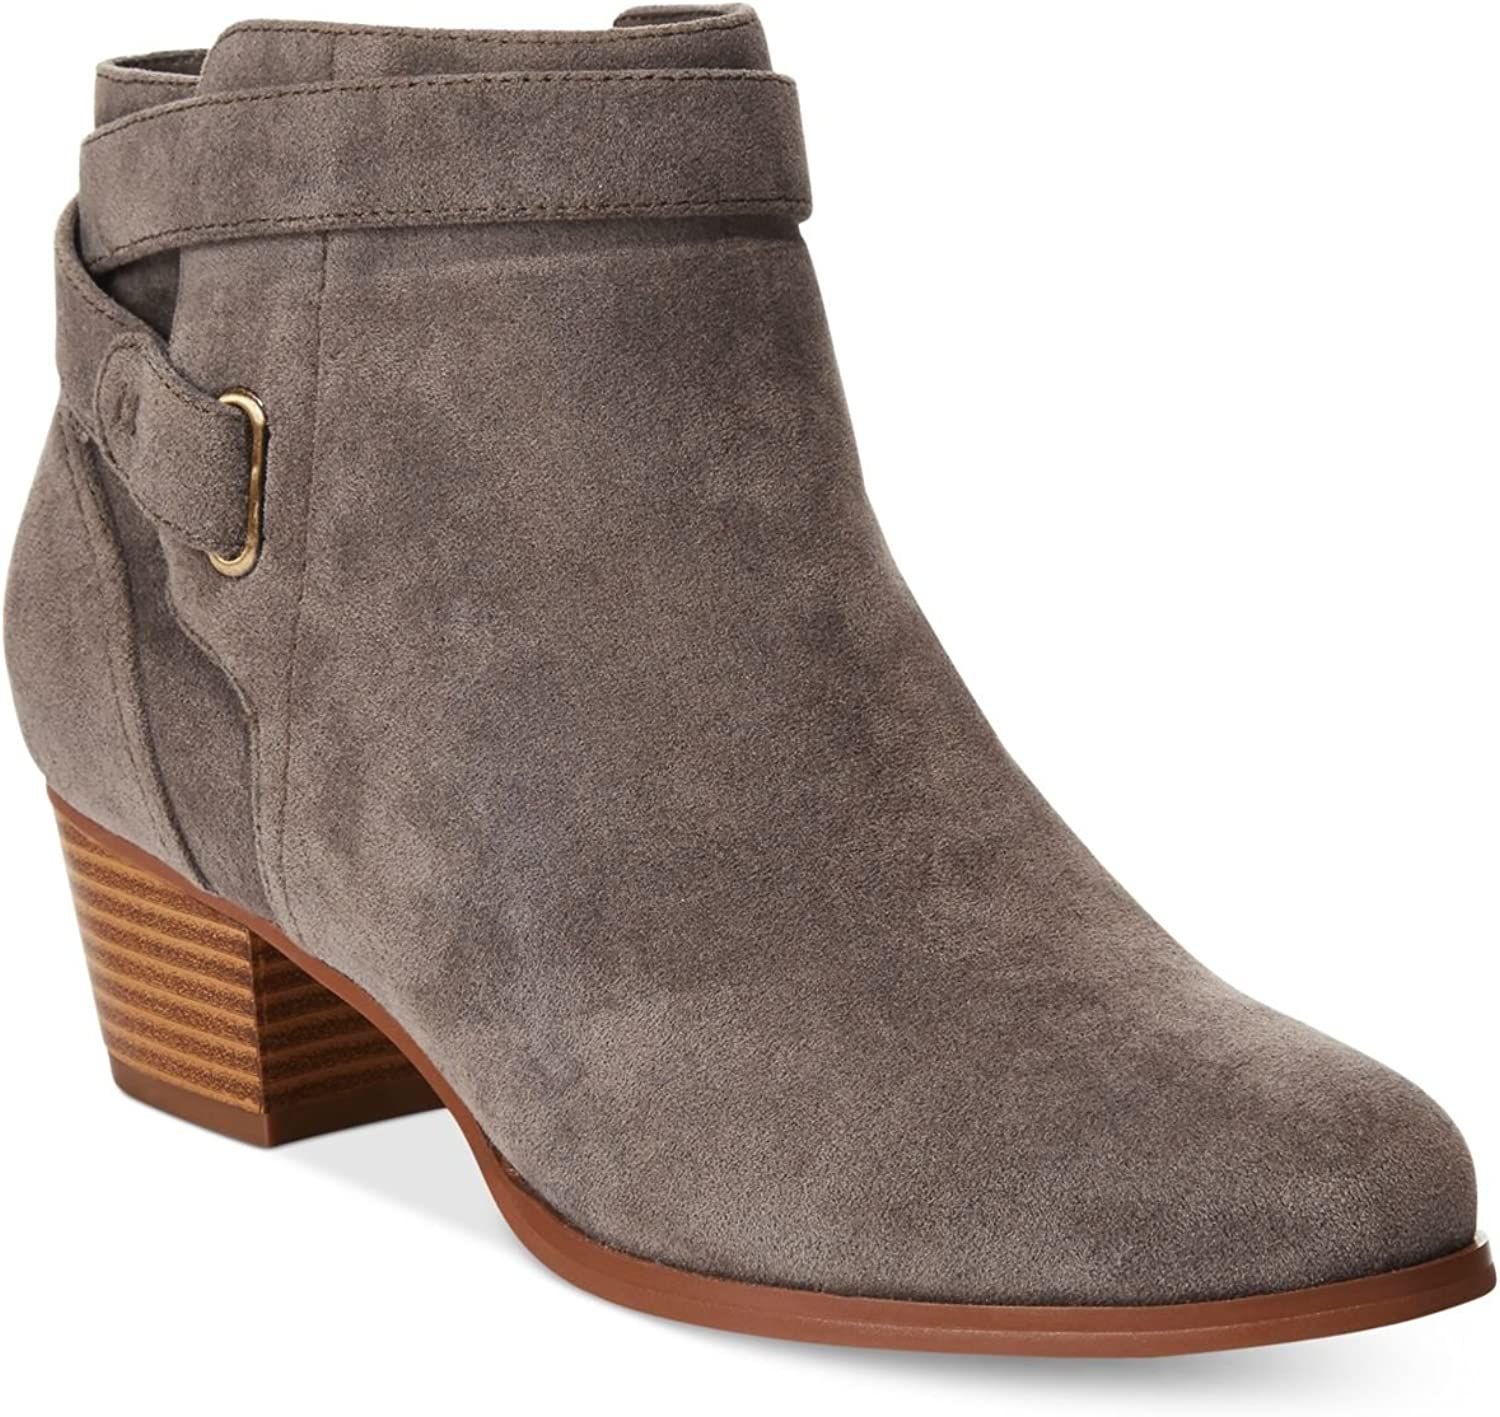 Giani Bernini Womens Oleesia Faux Suede Ankle Booties Taupe 7 Wide (C,D,W)